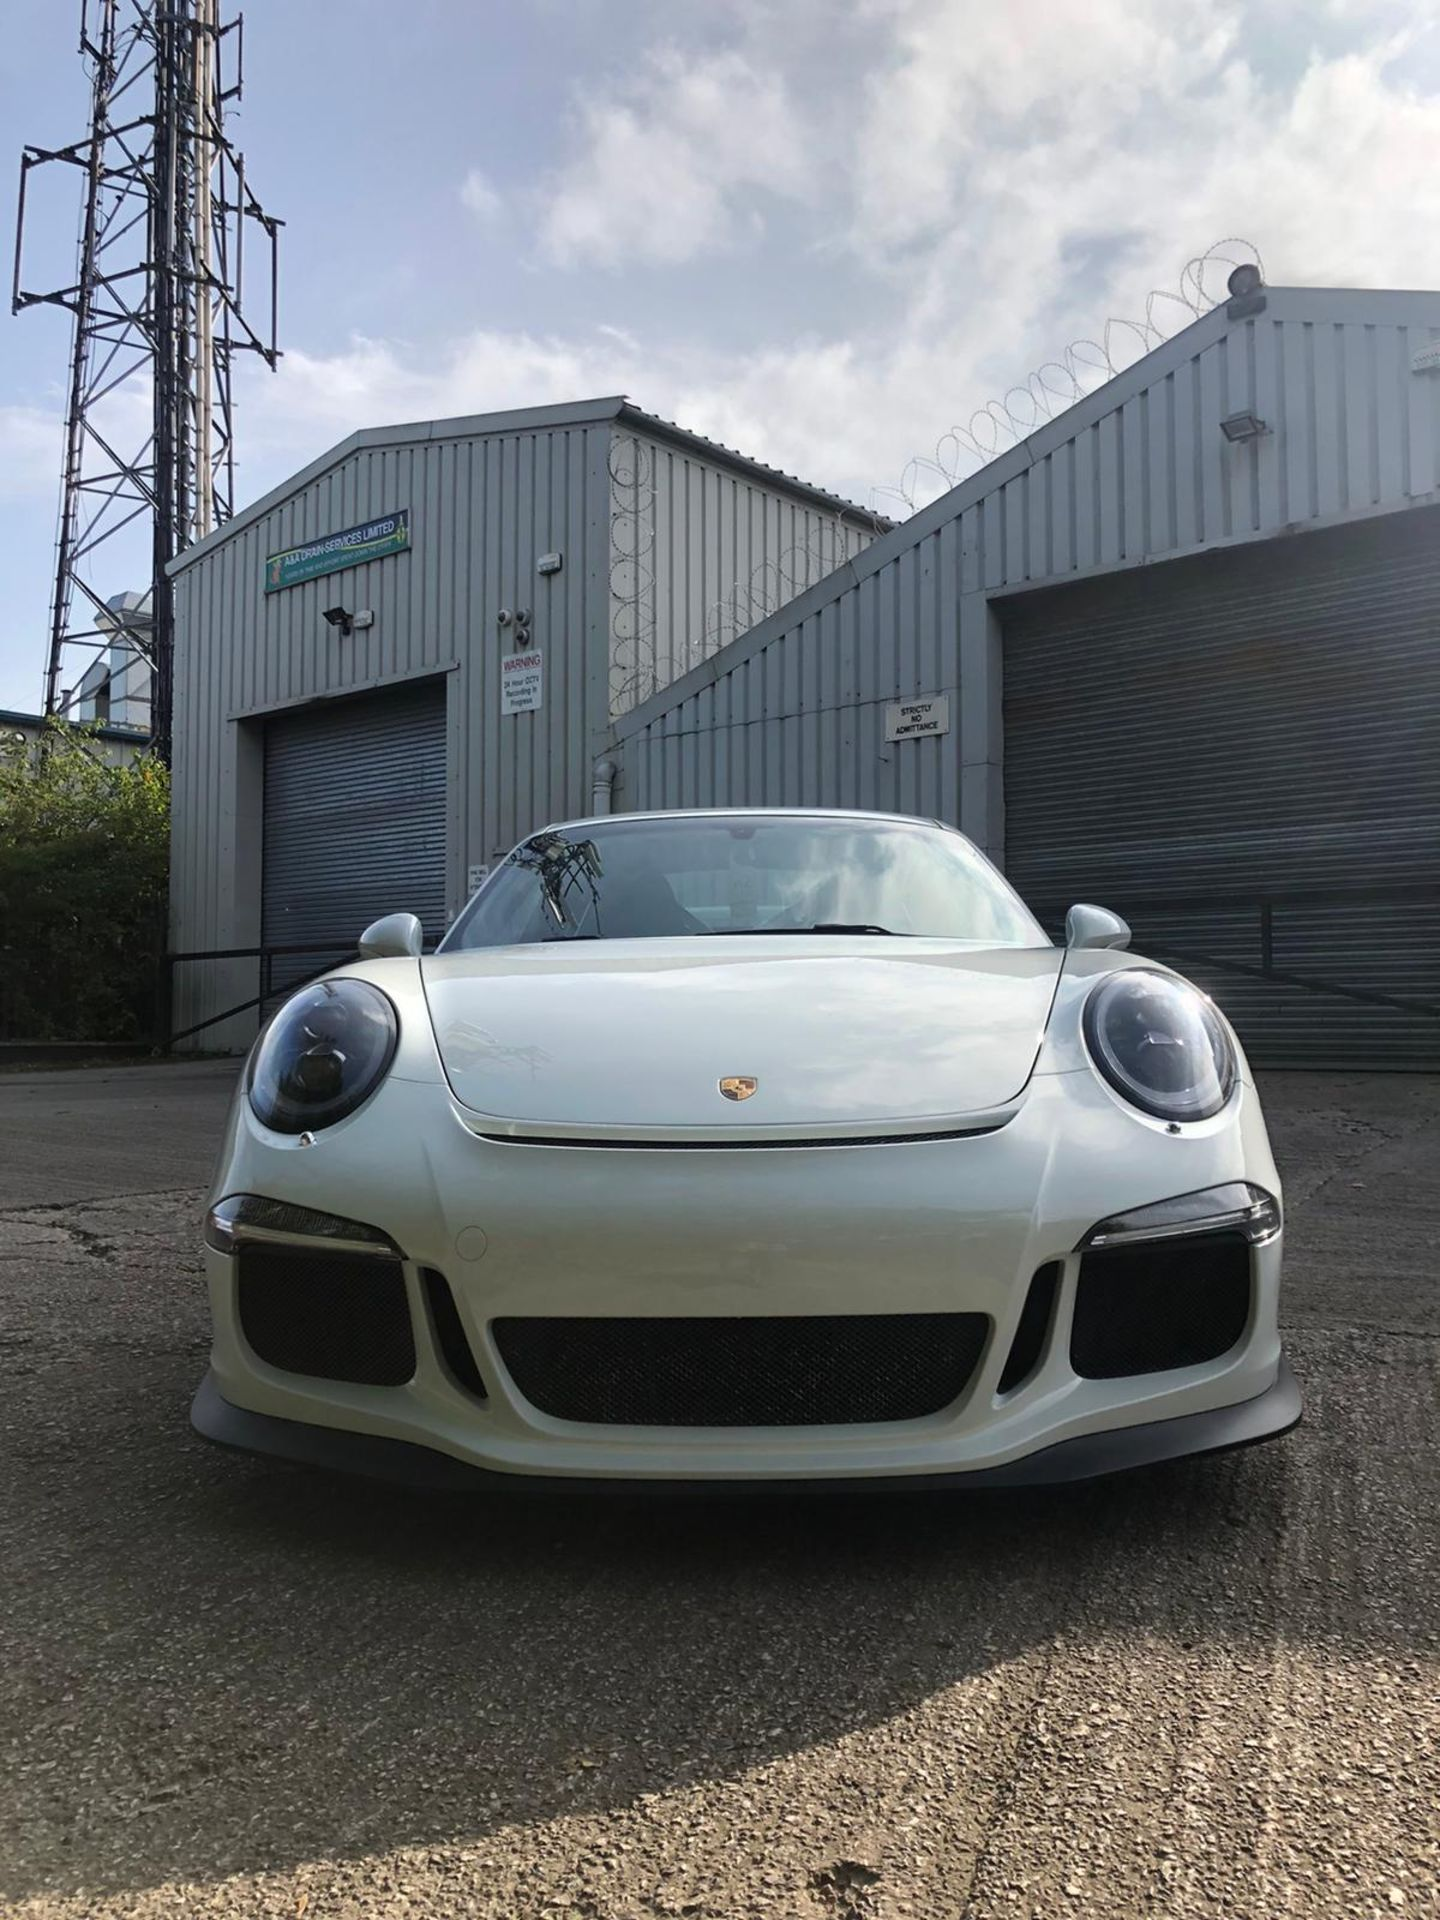 2014 PORSCHE GT3, CLUB SPORT ROLL CAGE, RACE SEATS CARBON KIT, 29,000 MILES, FULL PORSCHE HISTORY - Image 2 of 29